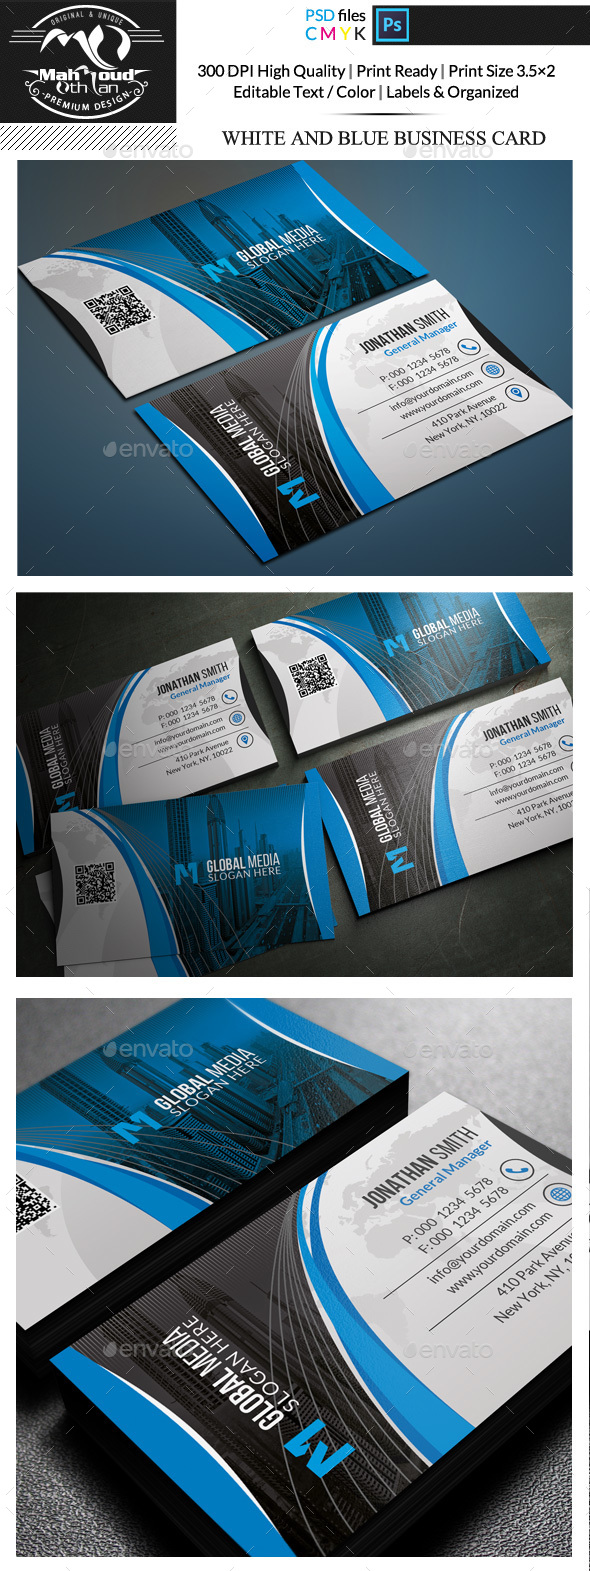 White And Blue Business Card - Corporate Business Cards